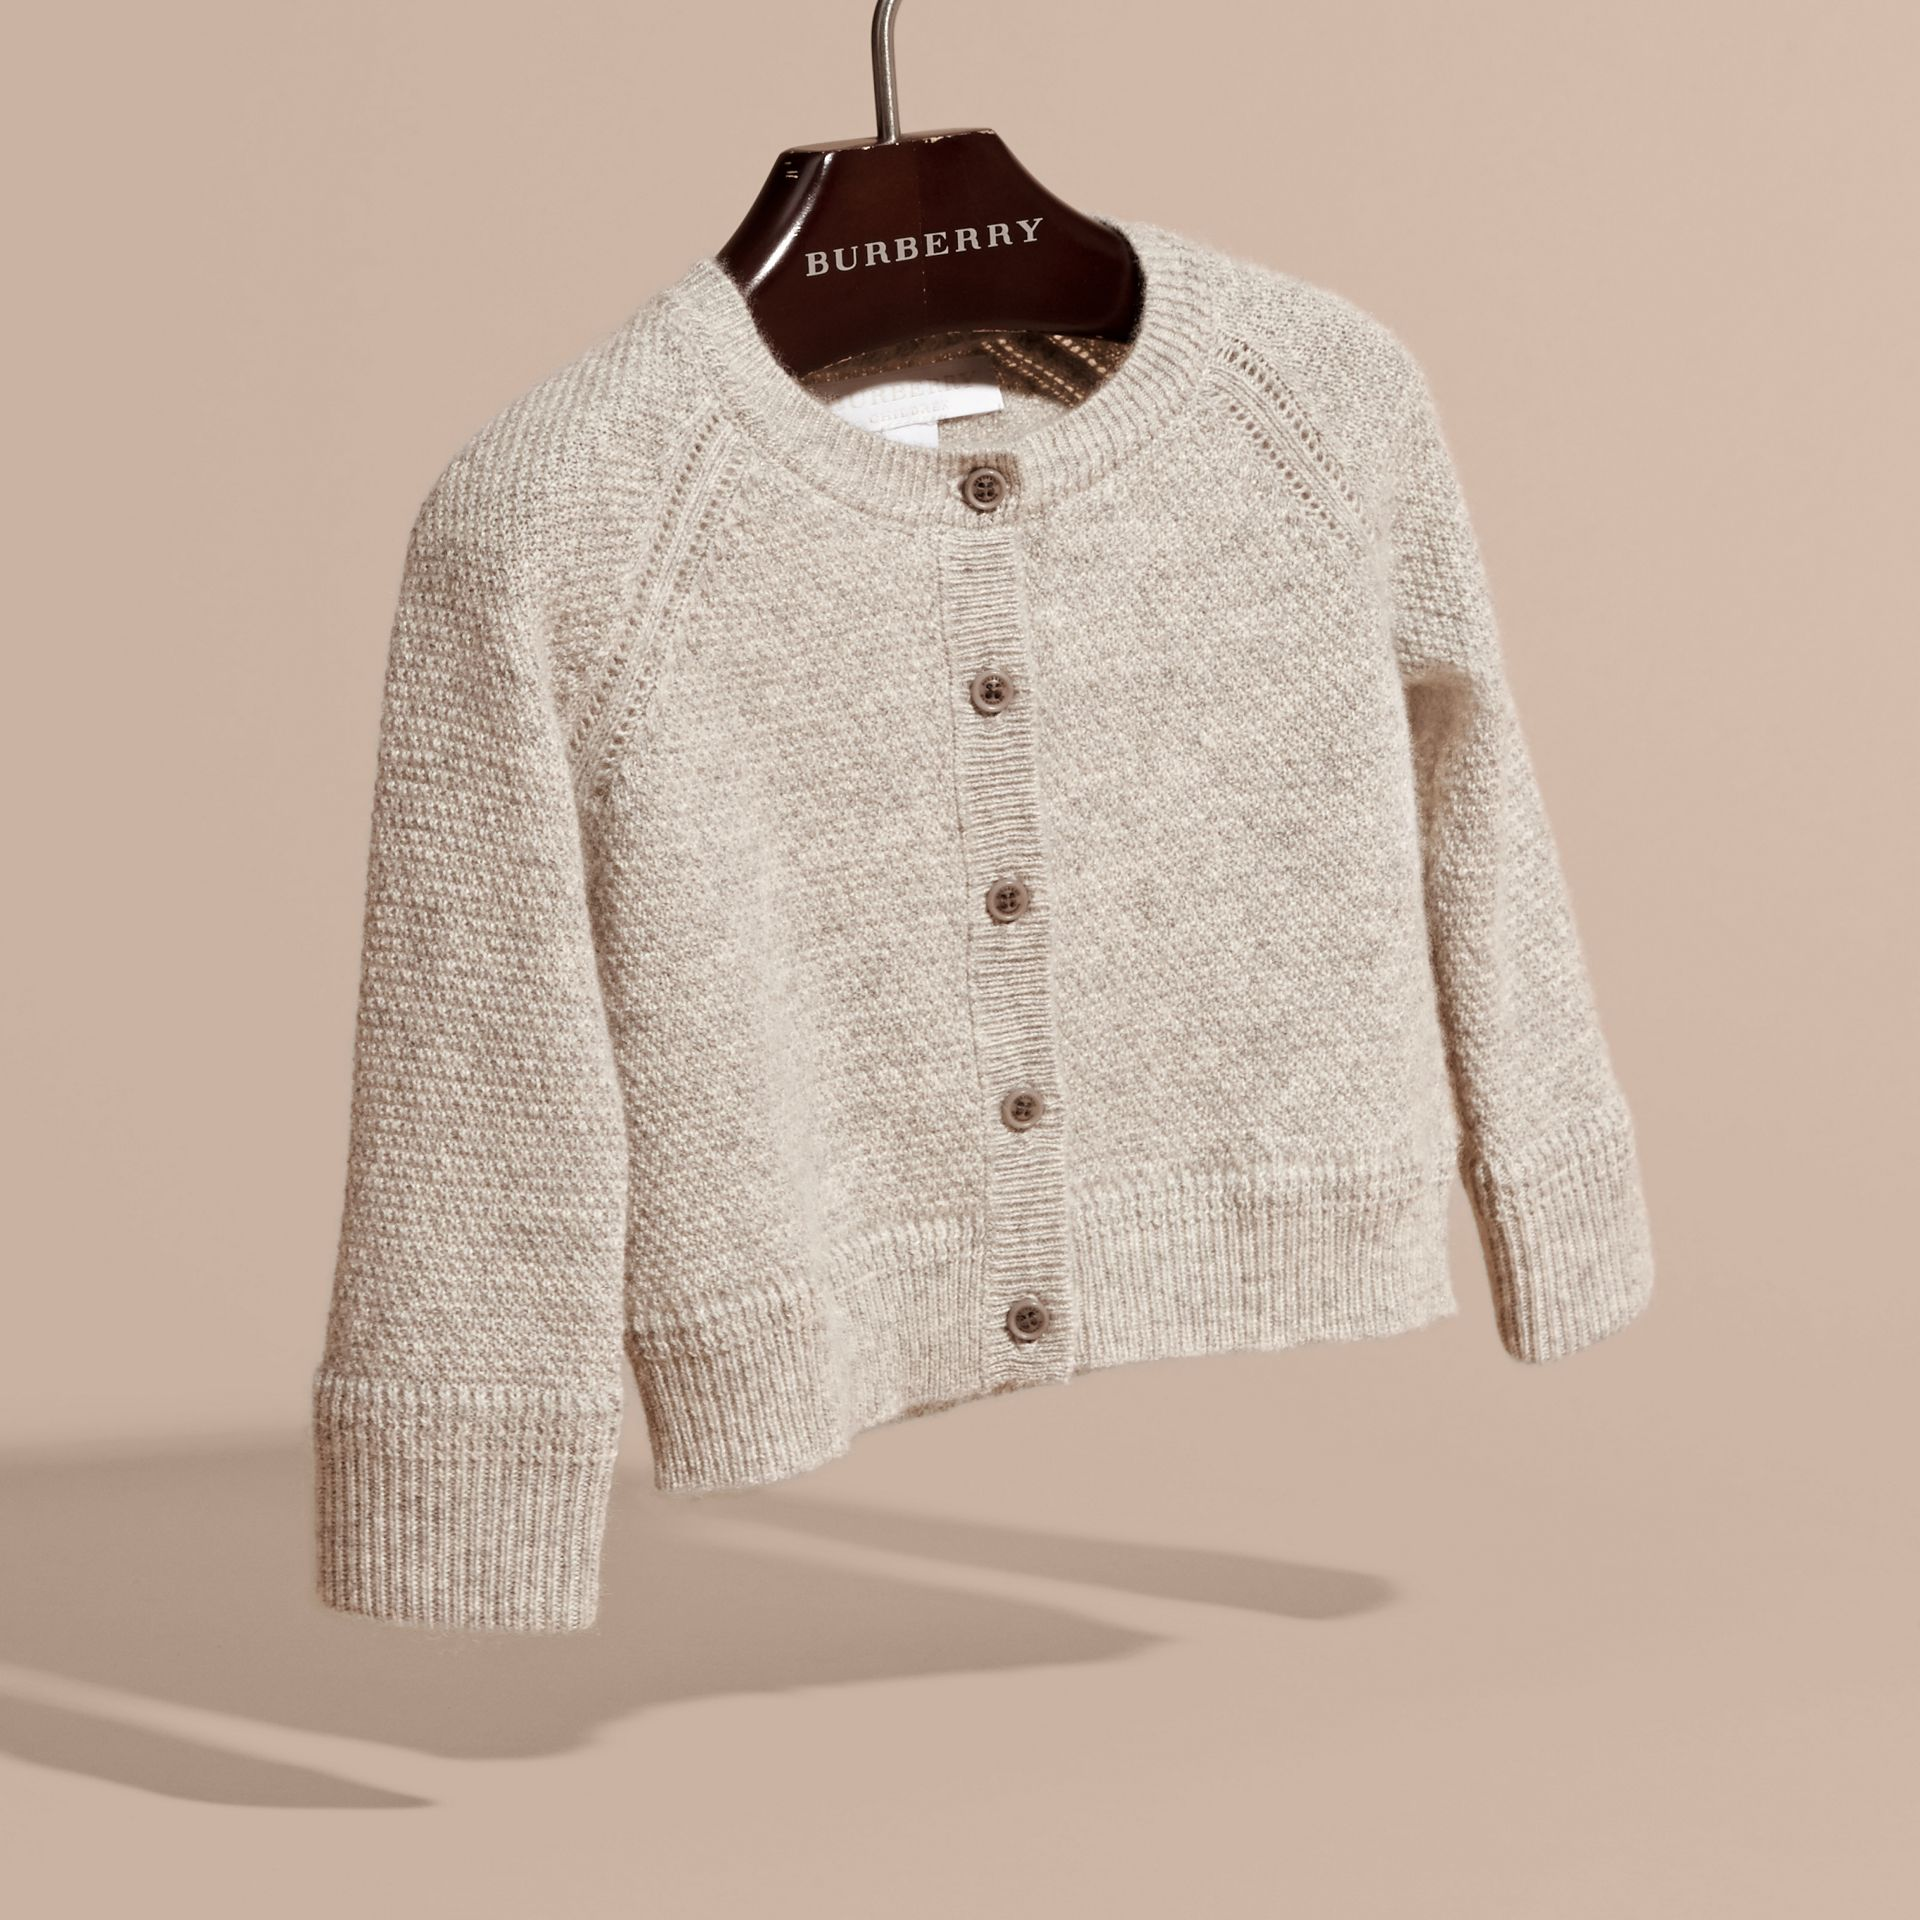 Textured Knit Cashmere Cardigan in Light Grey Melange | Burberry - gallery image 3